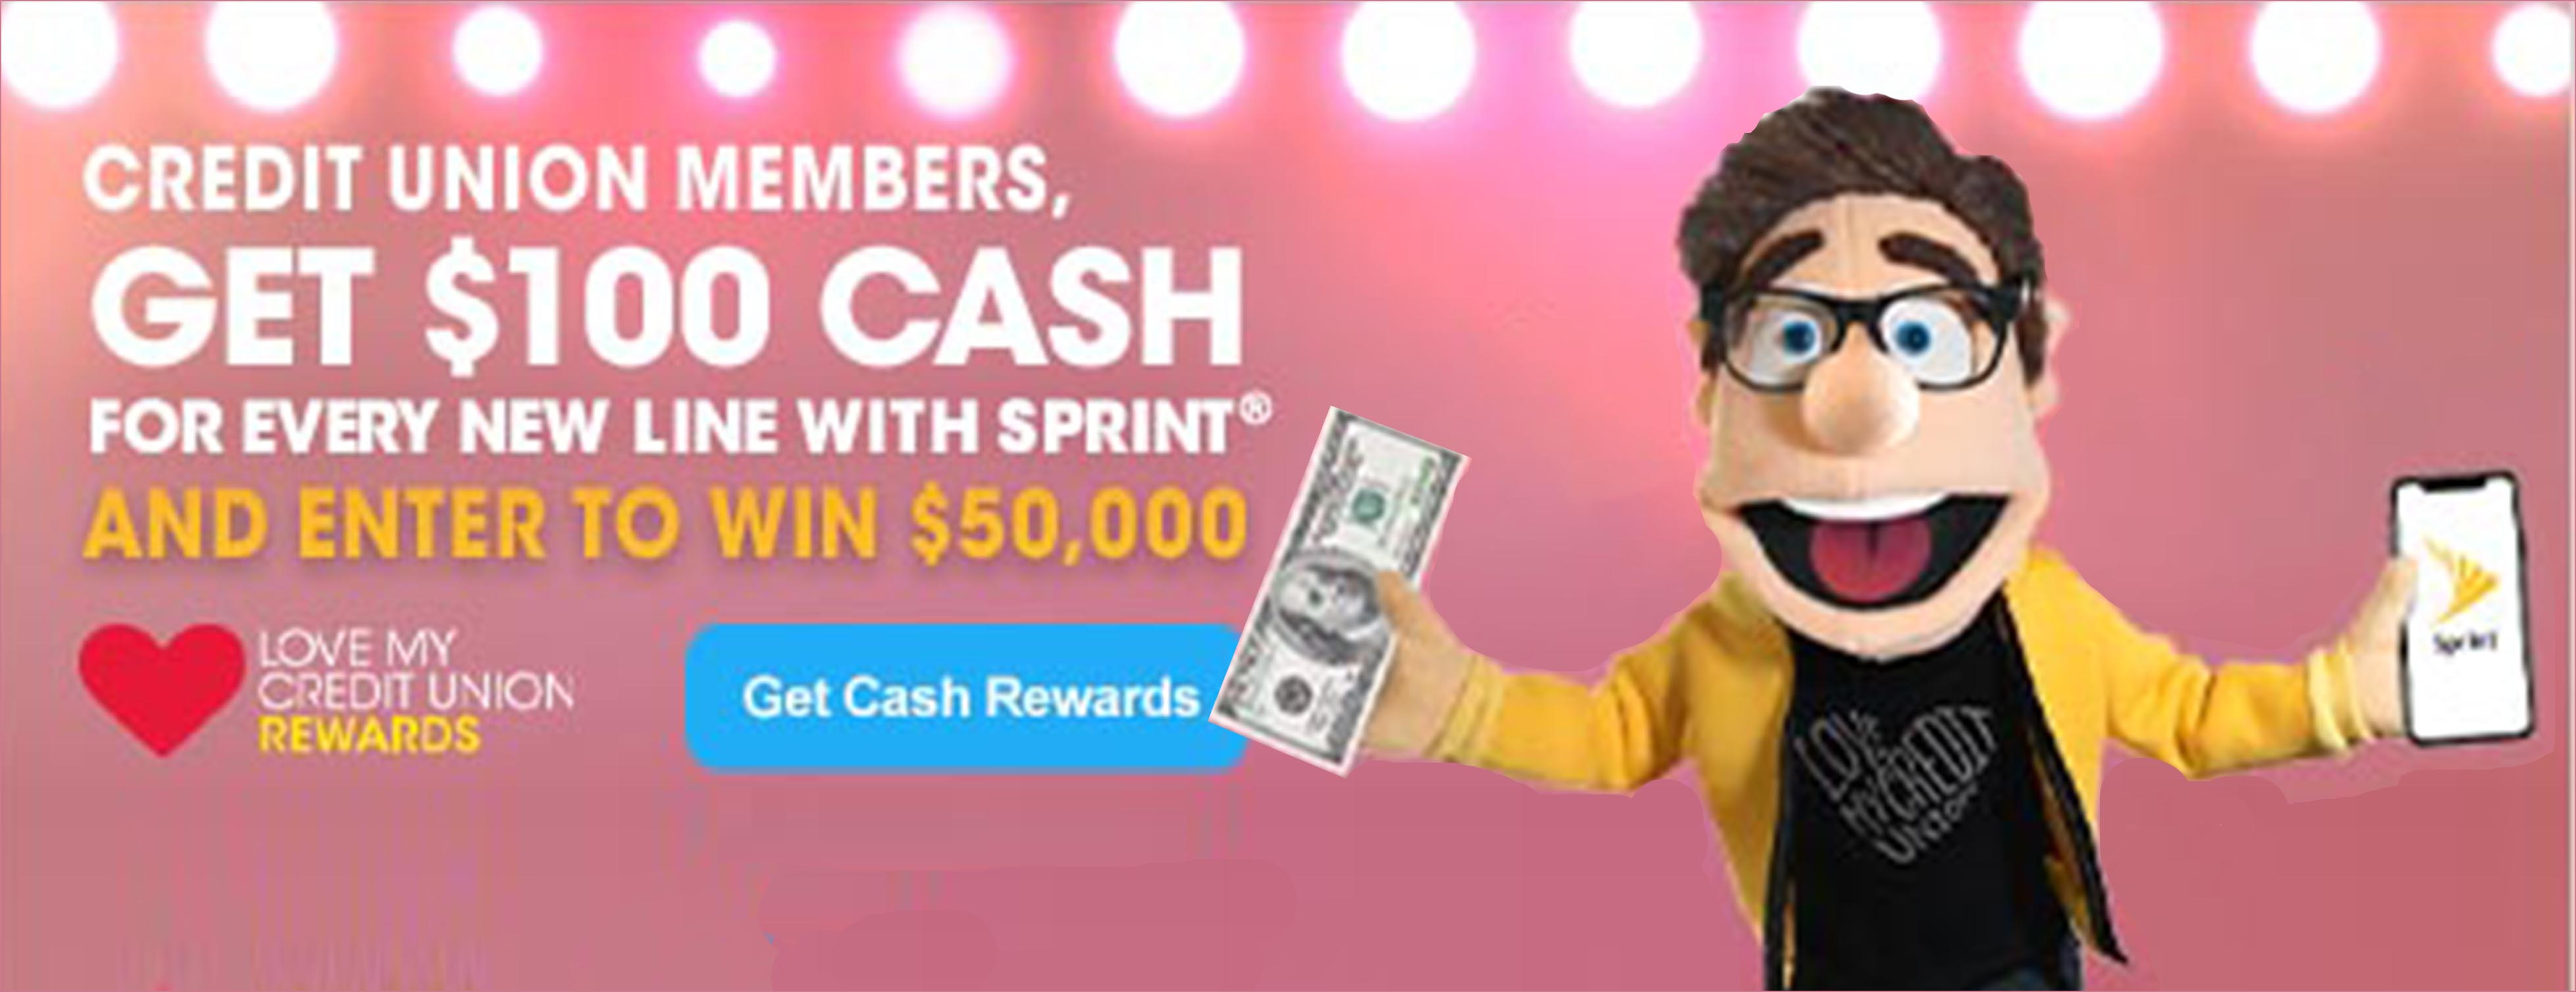 Love My Credit Unin Rewards Sprint Sweepstakes banner